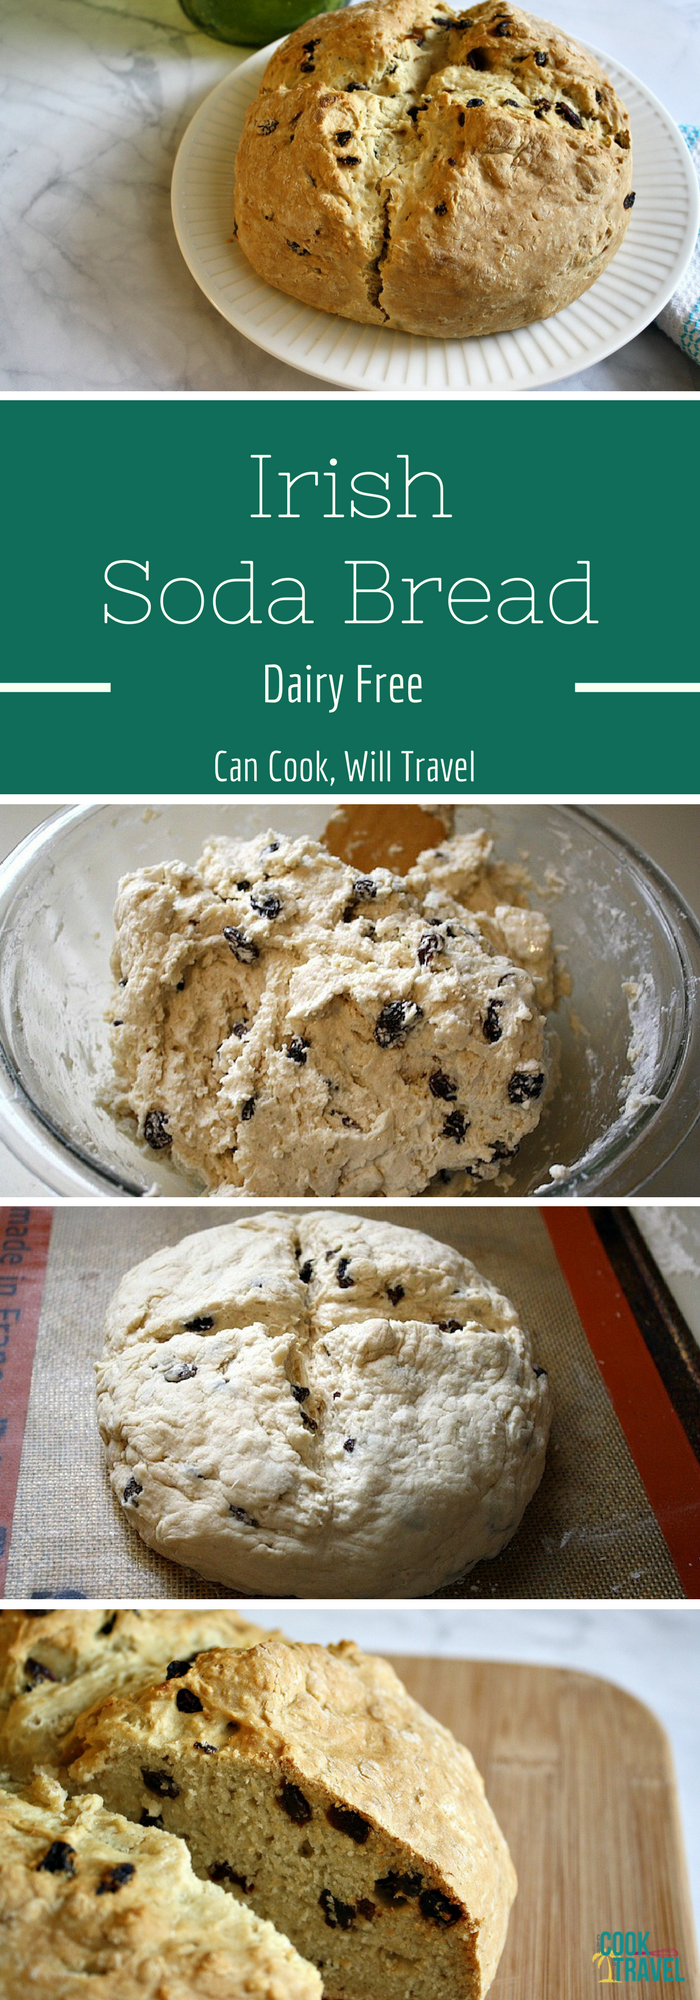 Dairy Free Irish Soda Bread